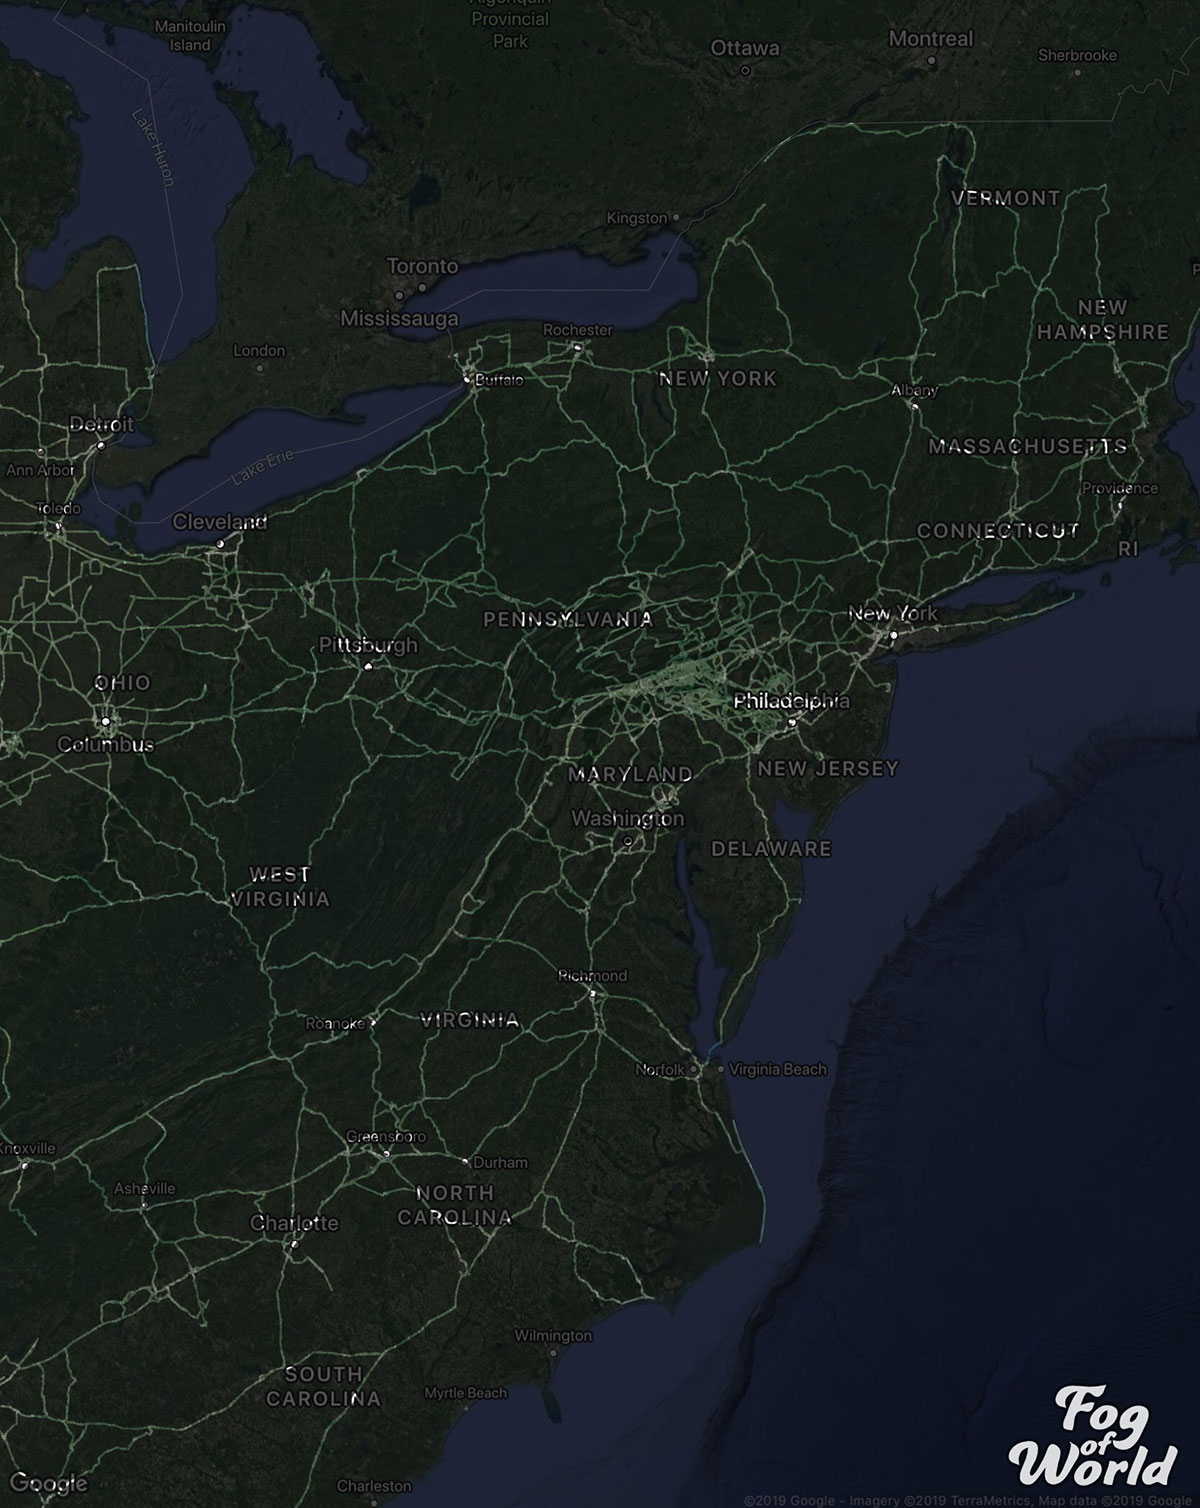 truck driver map reddit 6 A Truck Driver Recorded His Travels Since 2012 and Mapped the Results